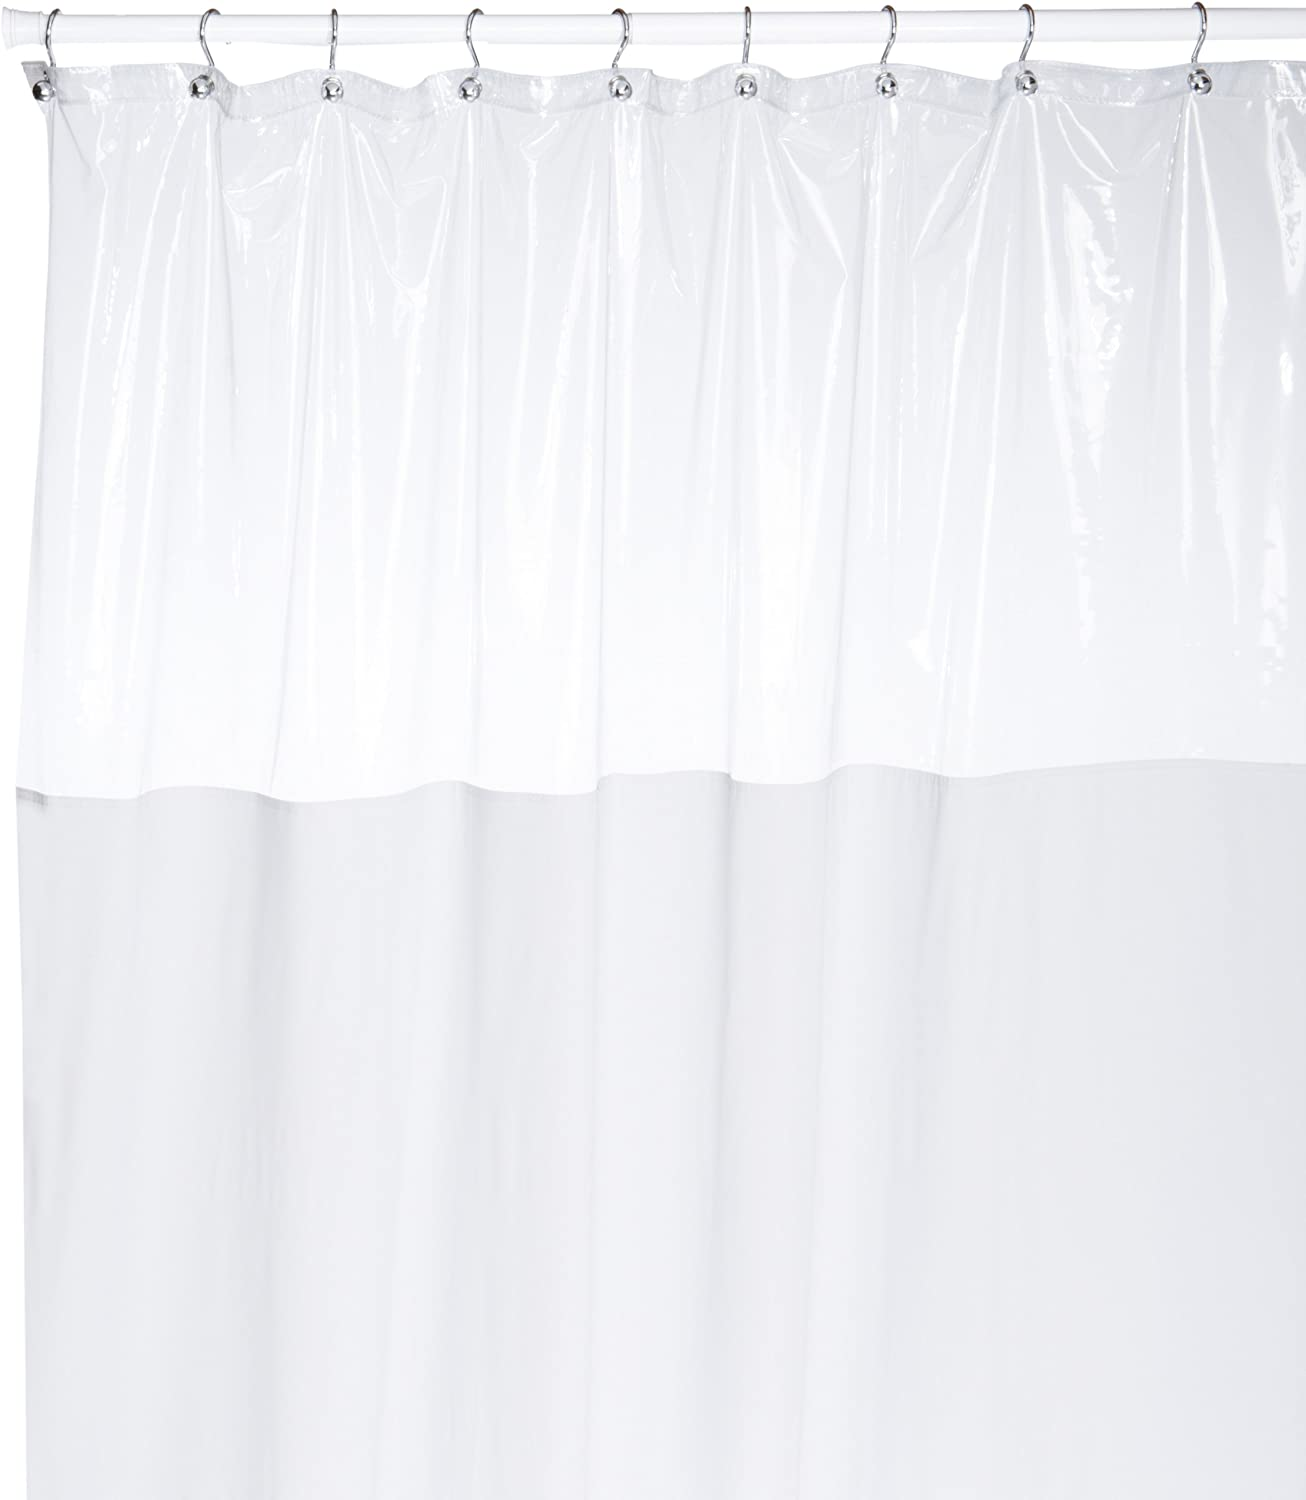 Carnation Home Fashions 54 by 78-Inch Vinyl Window Shower Curtain, White